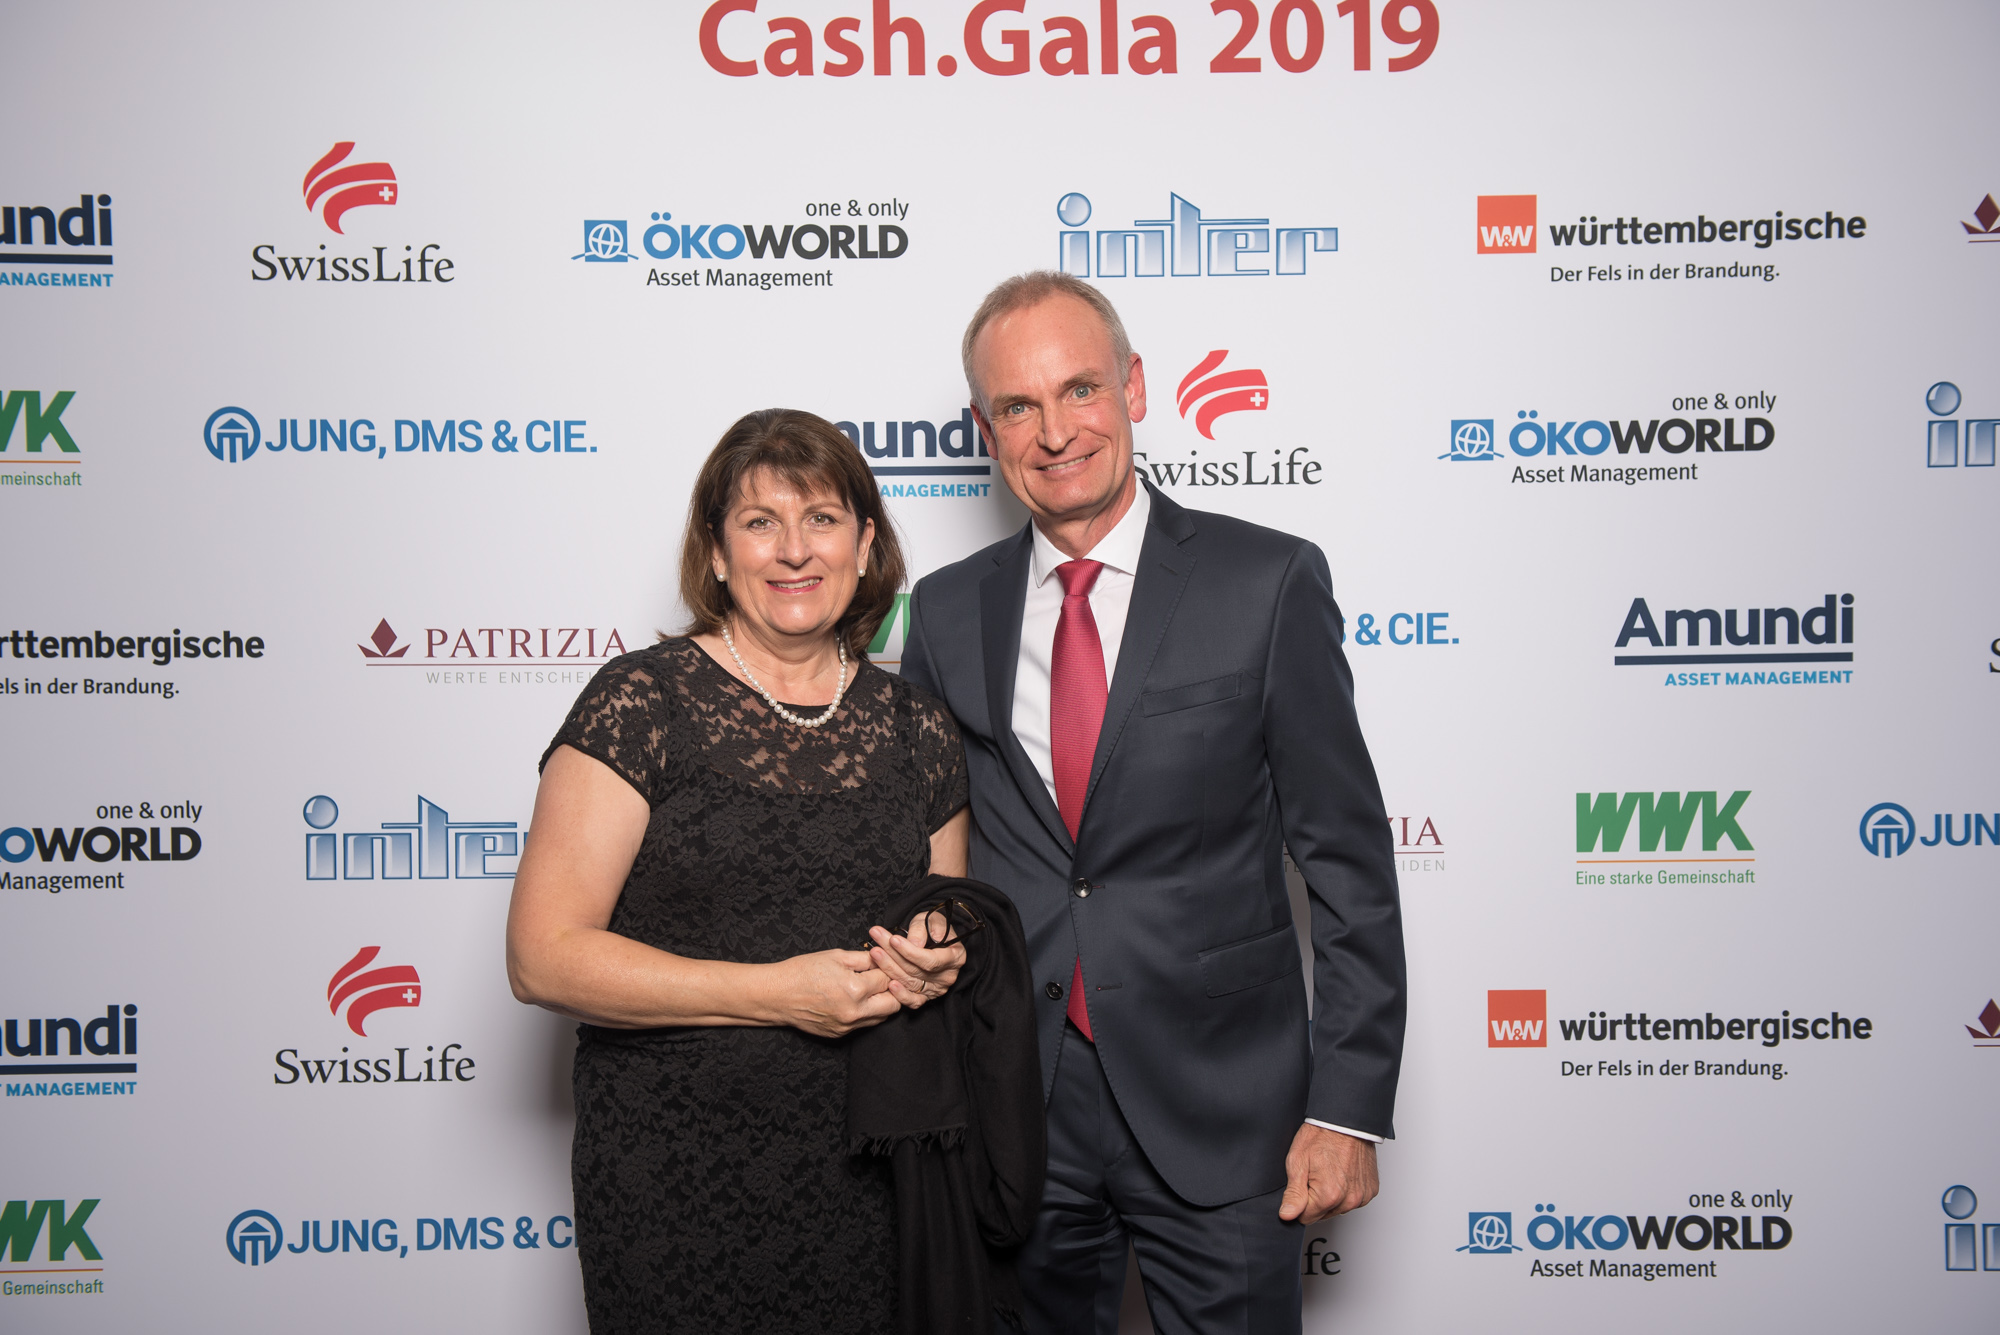 CashGala 2019 0055 AM DSC7106 in Cash.Gala 2019